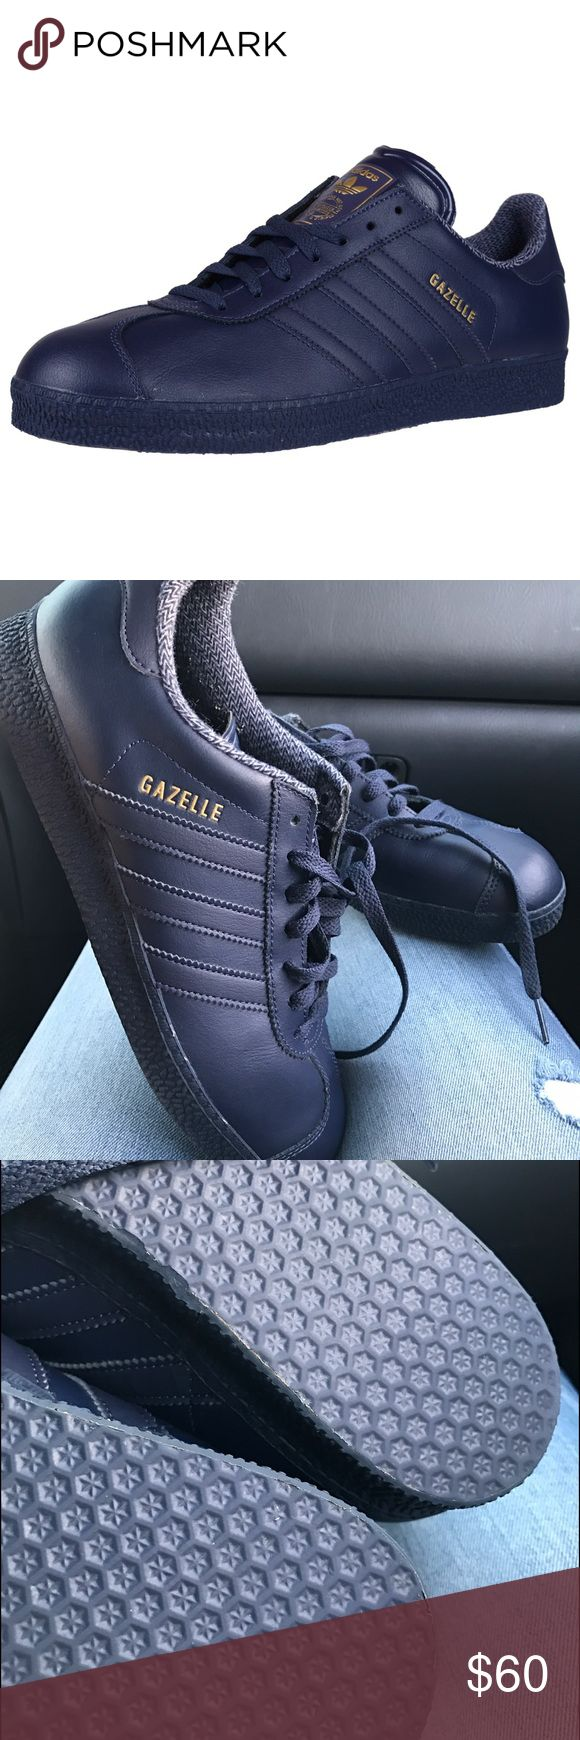 Adidas Gazelle 2 Retro Running Shoes Navy Sneakers Smoke free home. New without box. Men's size 7.5 - women's size 8.5 Adidas Shoes Sneakers